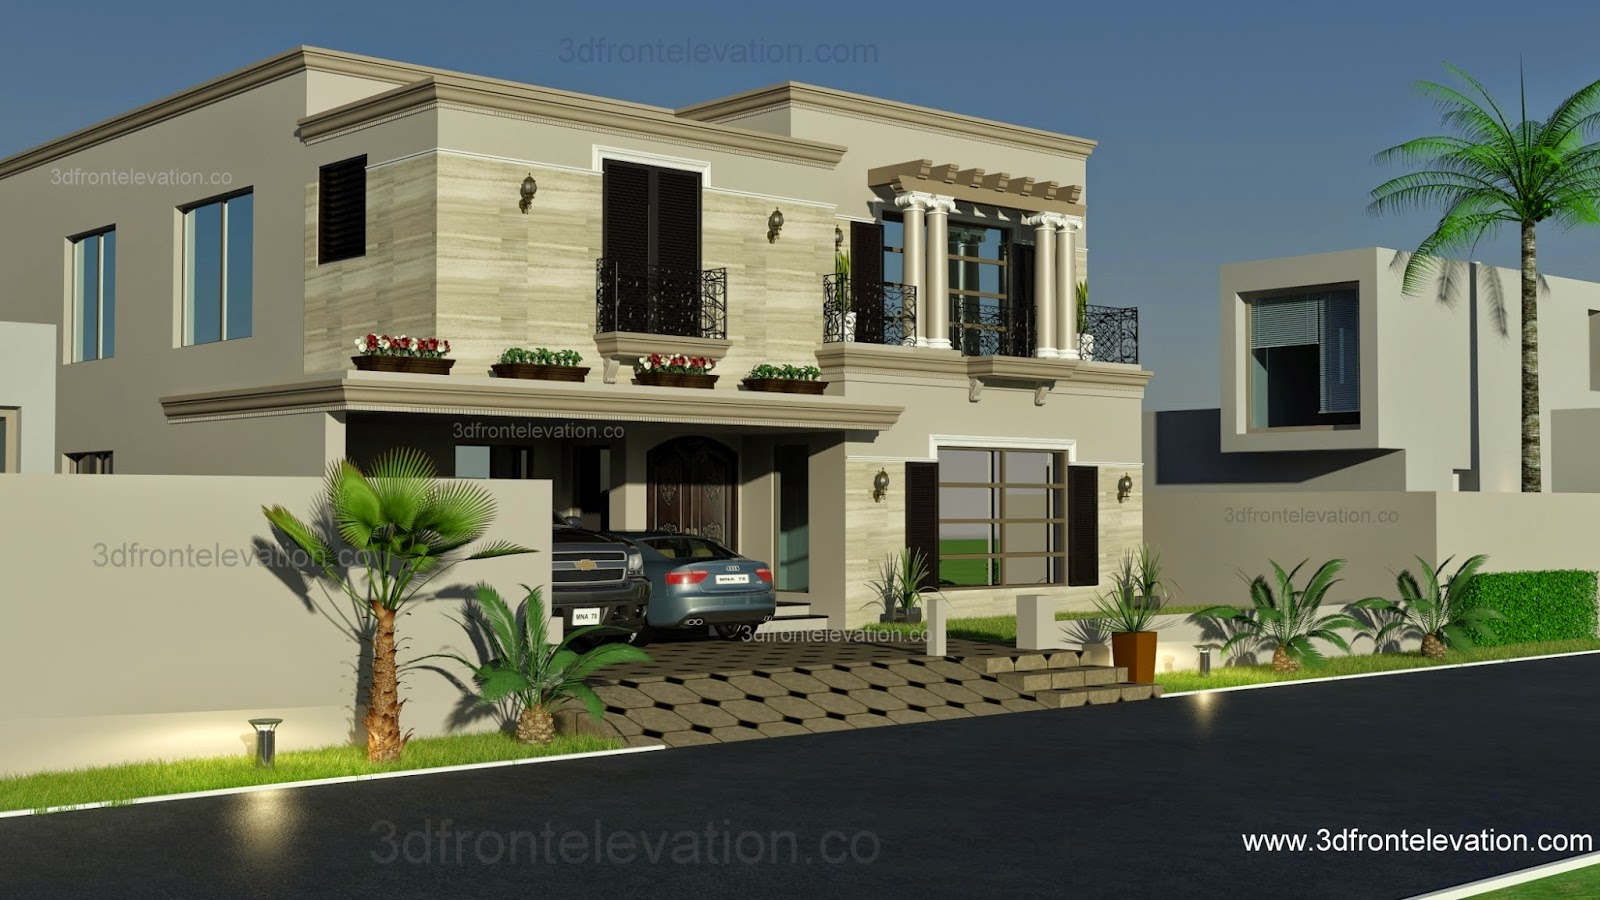 1 kanal spanish house design plan dha lahorepakistan - House Designs Plans